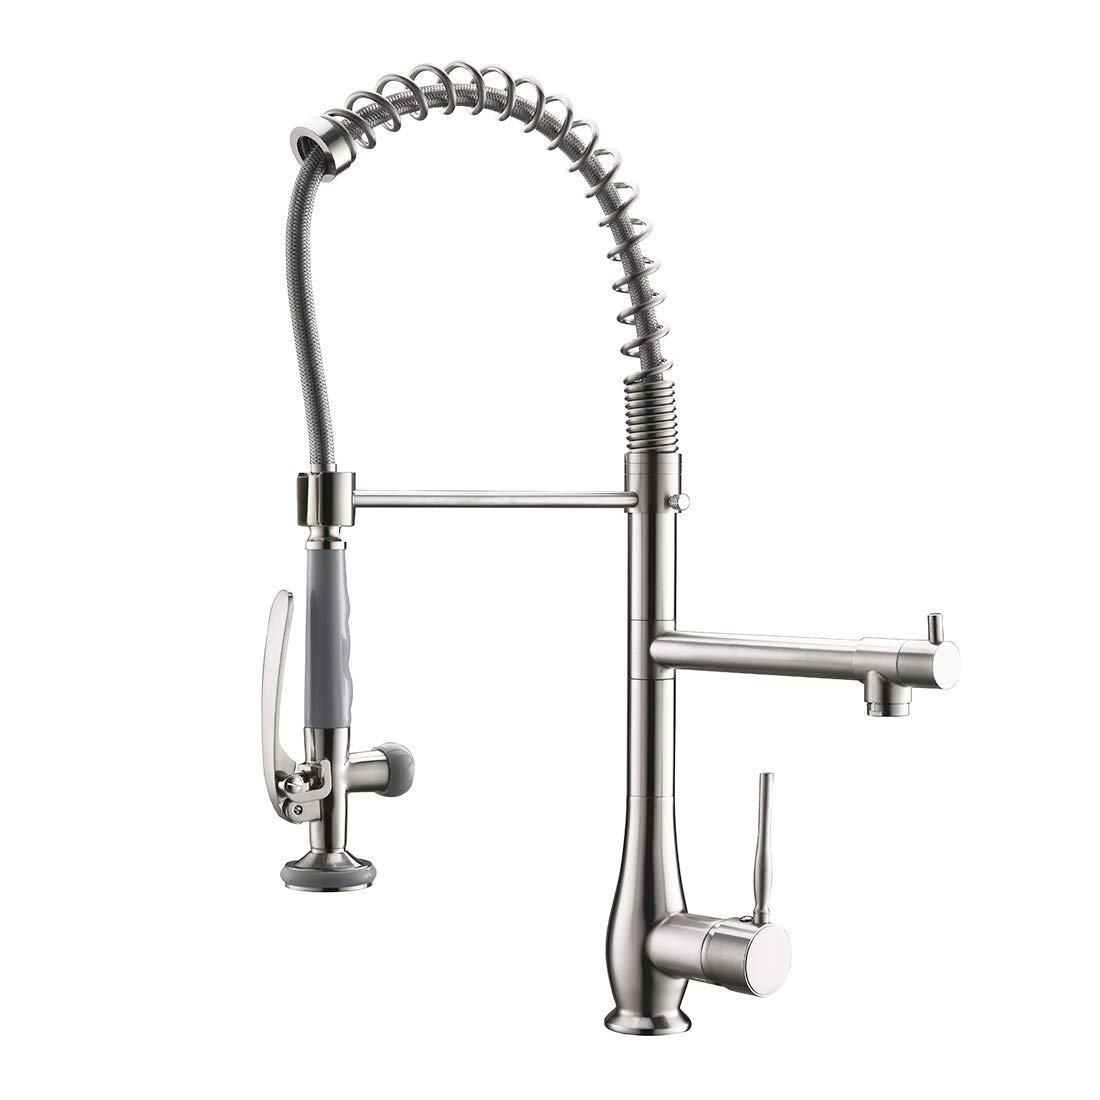 Qidian Commercial Kitchen Faucet with Pull Down Sprayer,Single Handle Stainless Steel Kitchen Sink Faucet Brushed Nickel